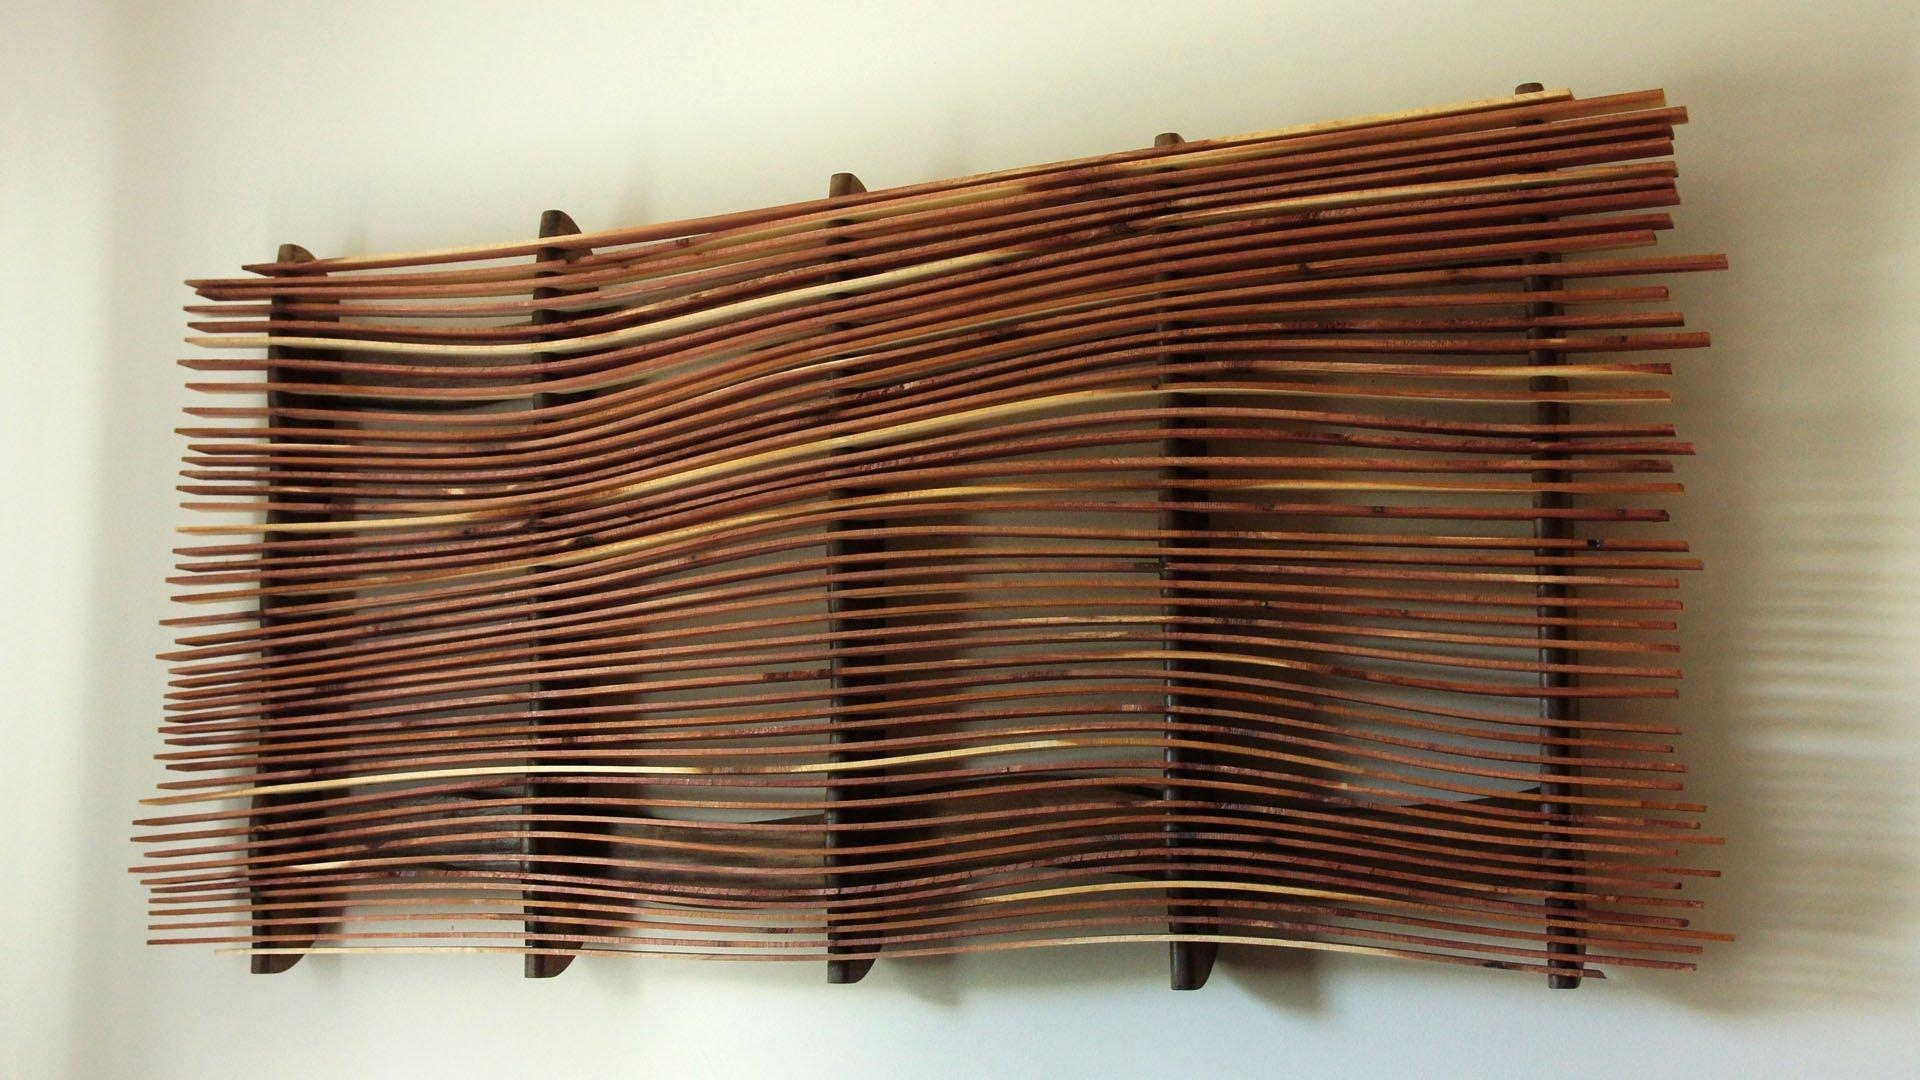 Wall Art From Scrap Wood – Youtube Regarding Wood Wall Art (View 4 of 20)